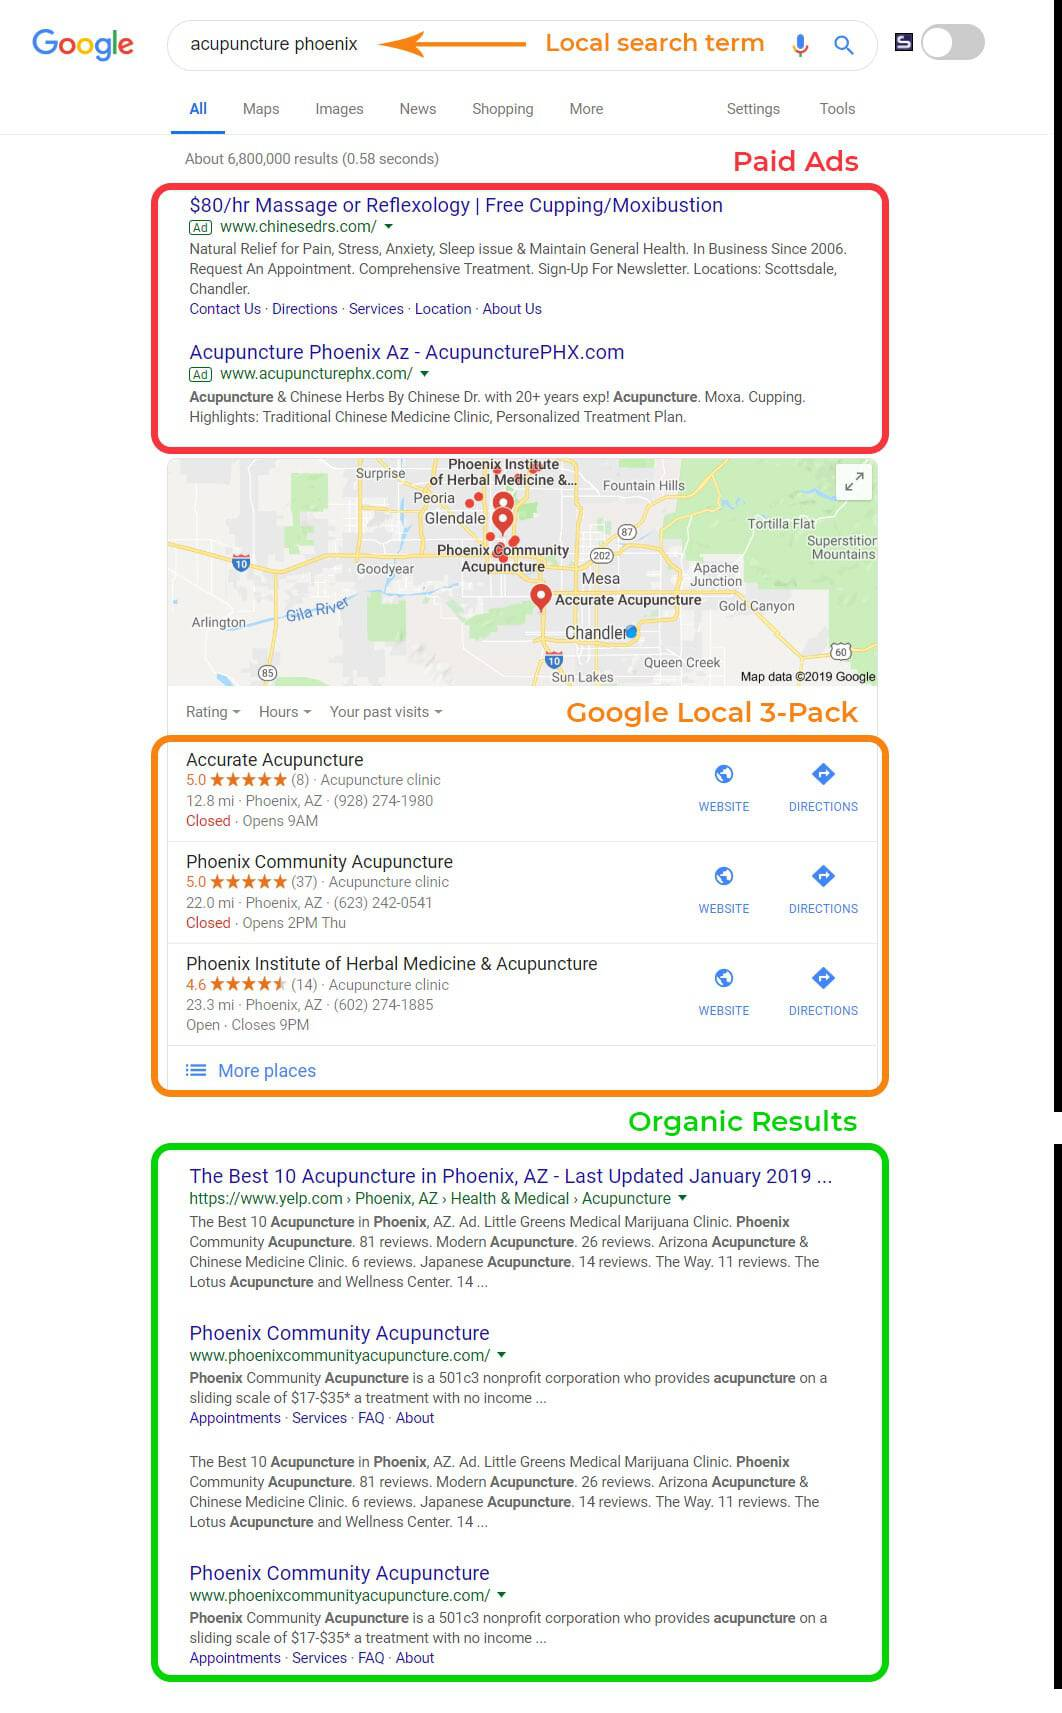 An example of a Google local search result page